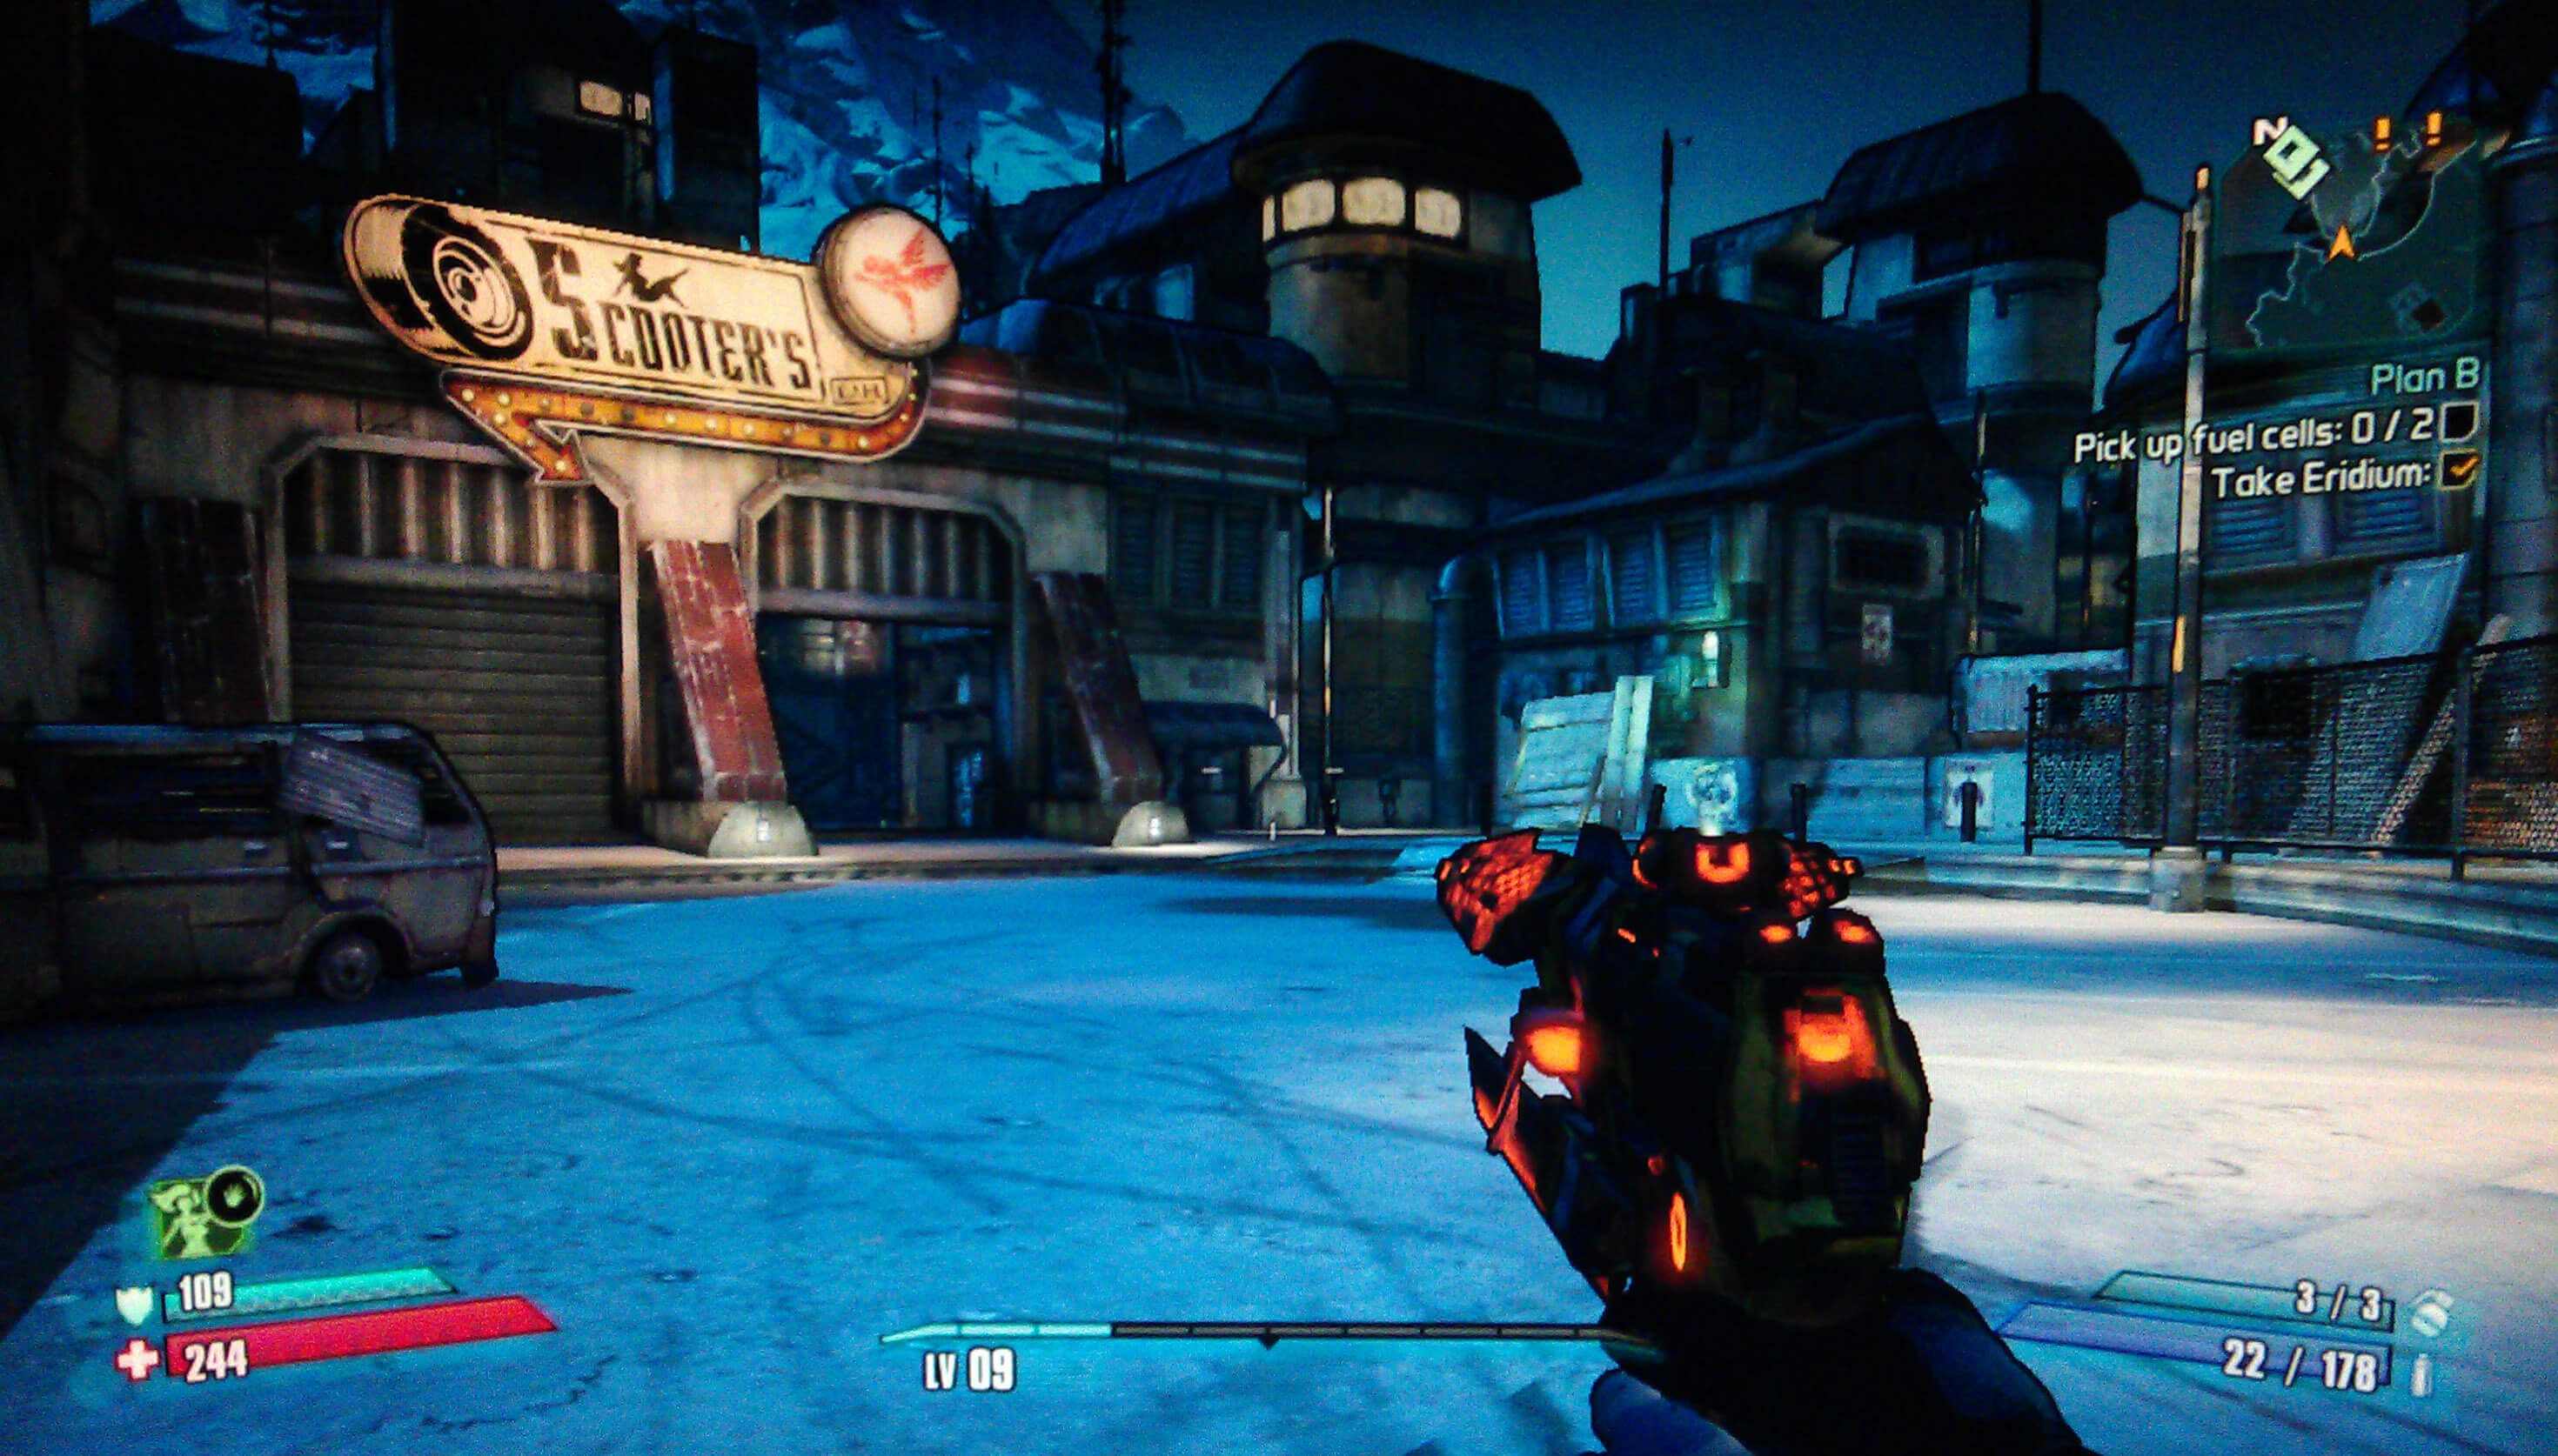 Borderlands 2 Plan B Walkthrough - VGFAQ Borderlands 2 Walkthrough